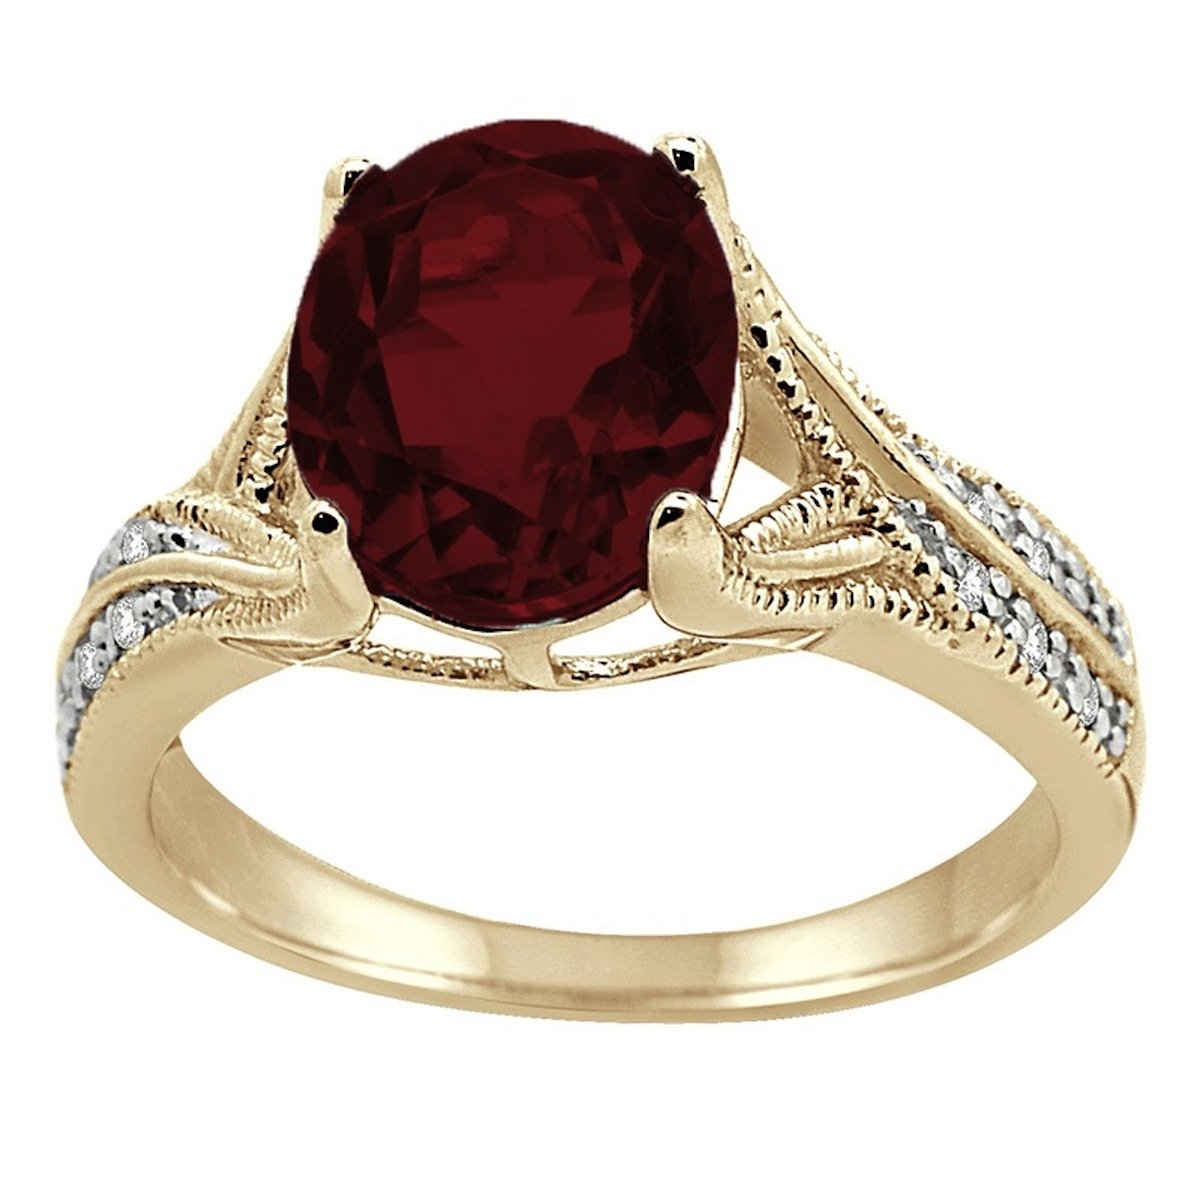 Oval Cut Garnet and Diamond Antique Ring in 10K Yellow Gold